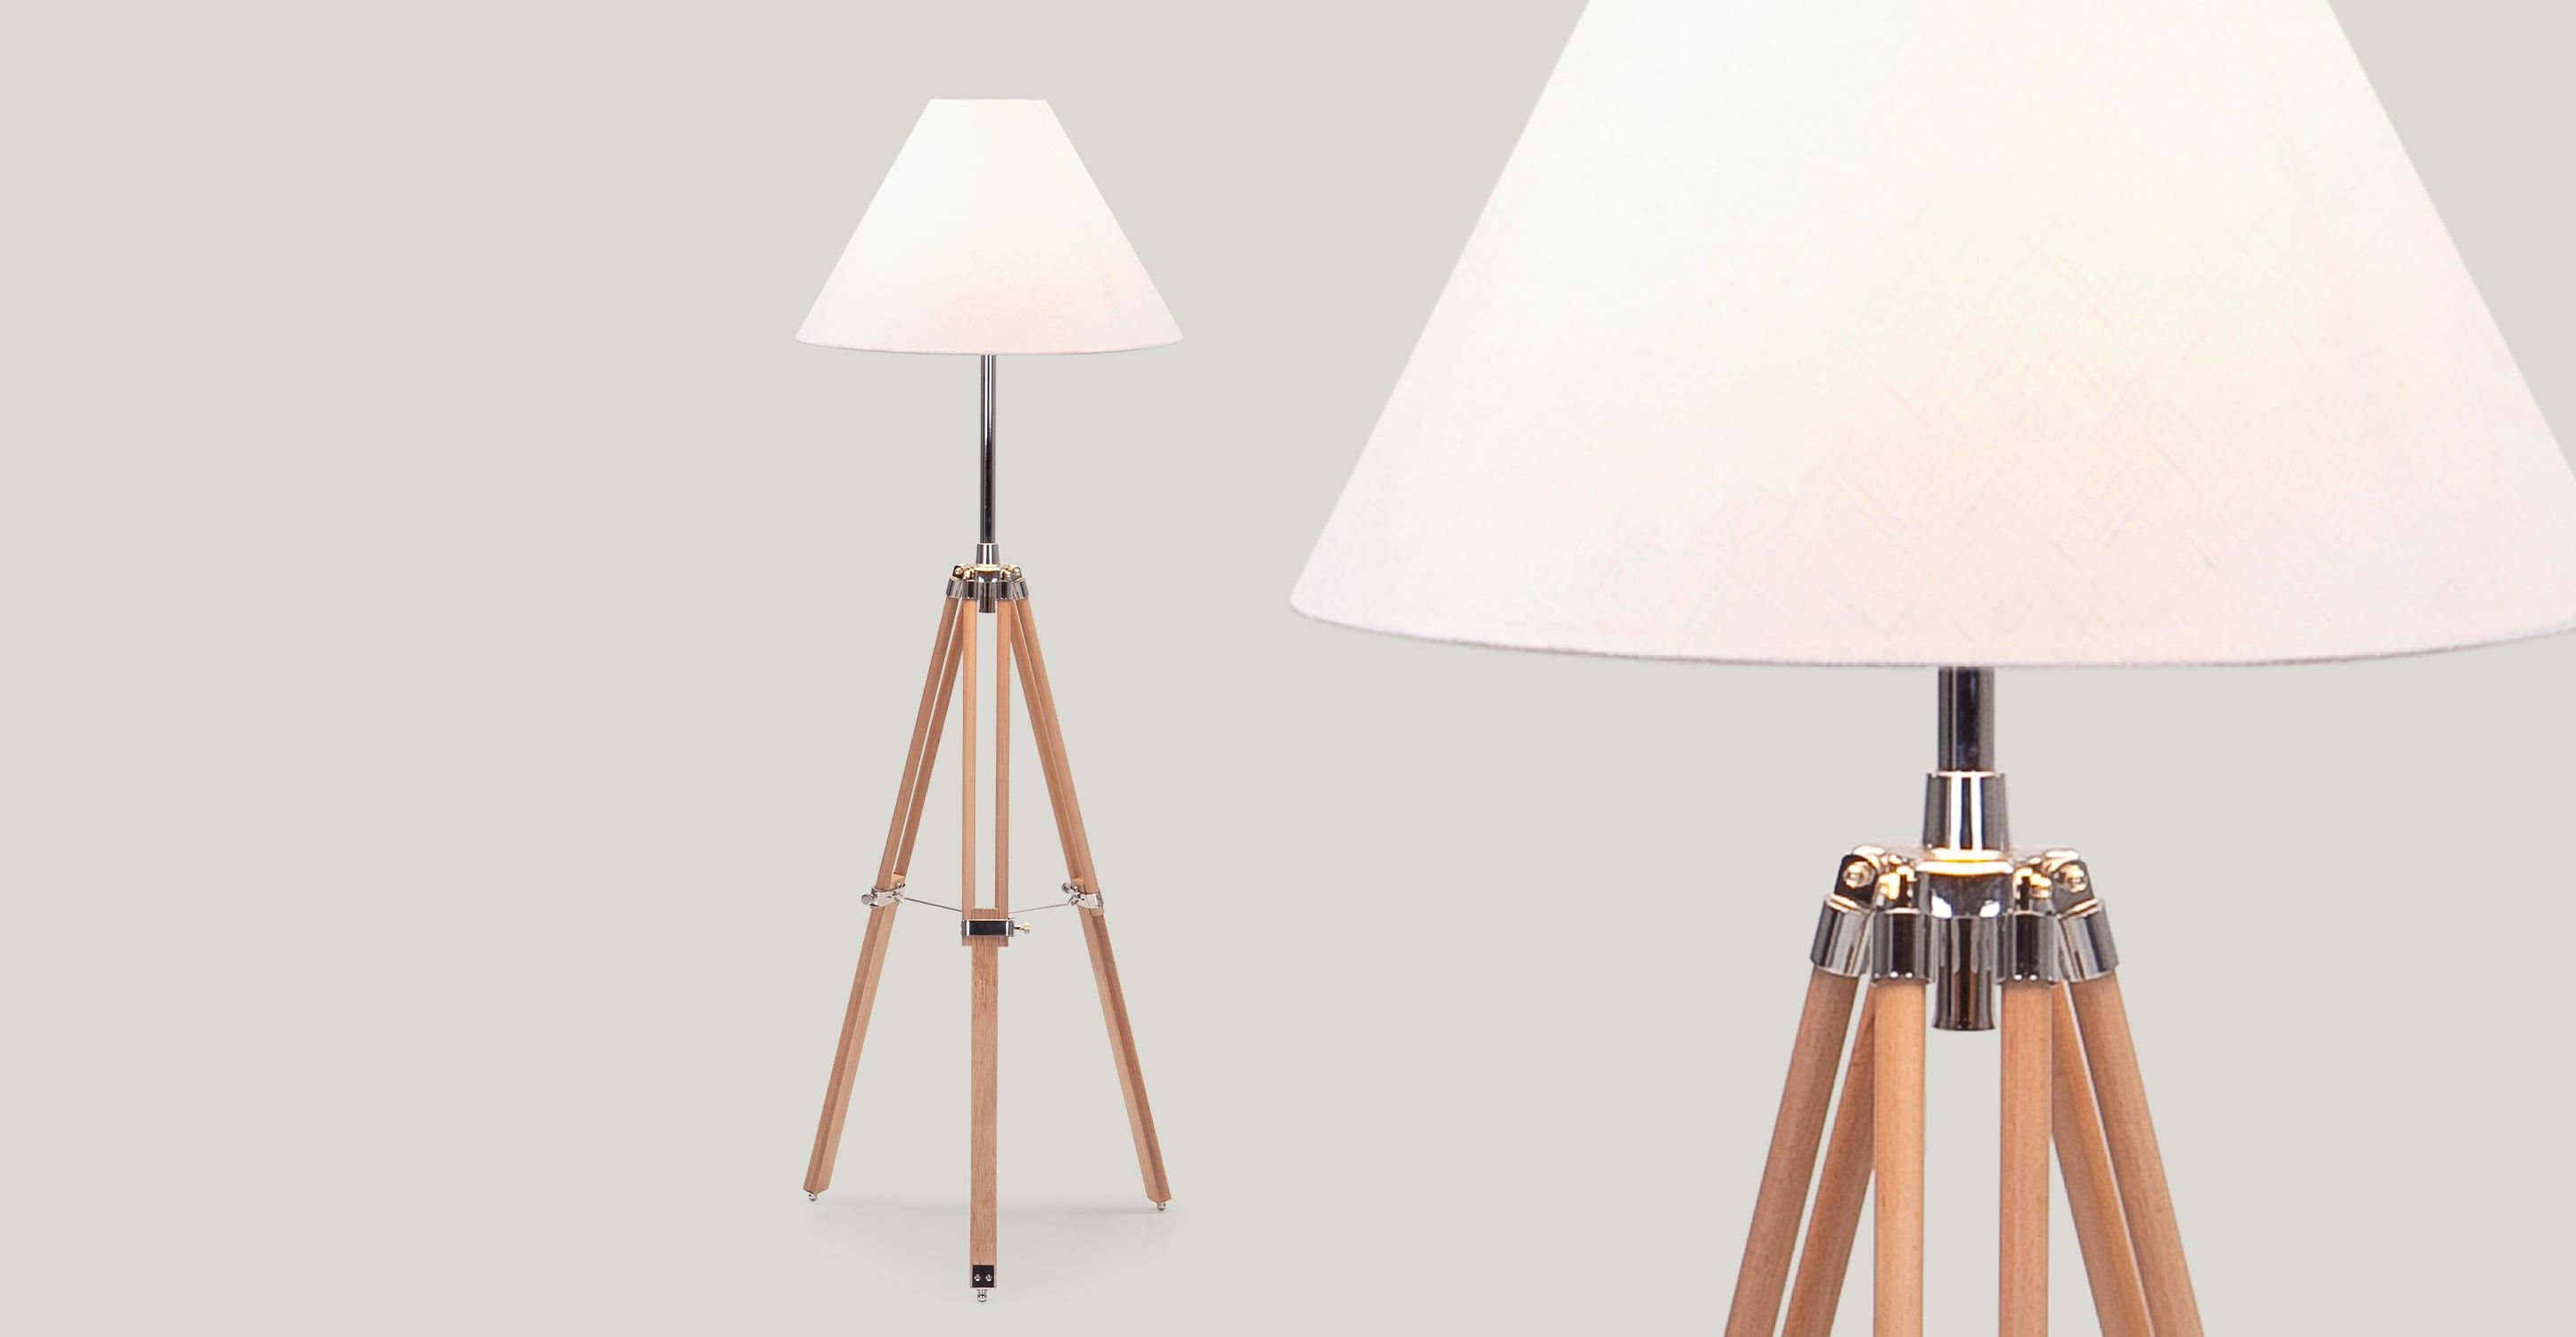 Made tripod floor lamp natural wood navy express delivery navy the navy tripod floor lamp in natural wood brings versatile and striking contemporary lighting to any set up mozeypictures Choice Image